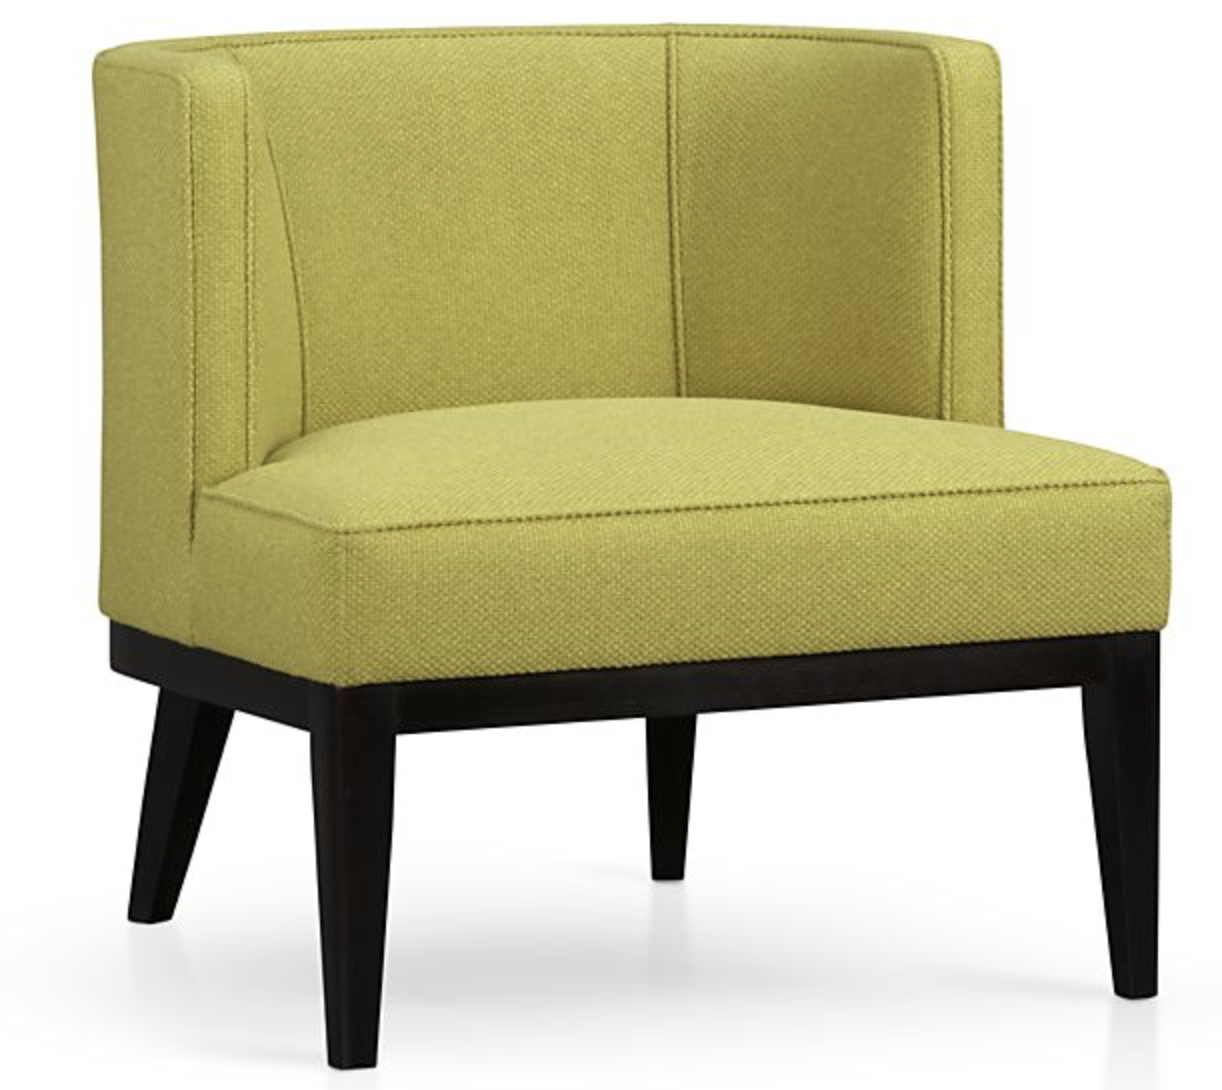 Crate & Barrel -  Grayson Citron Chair  $899